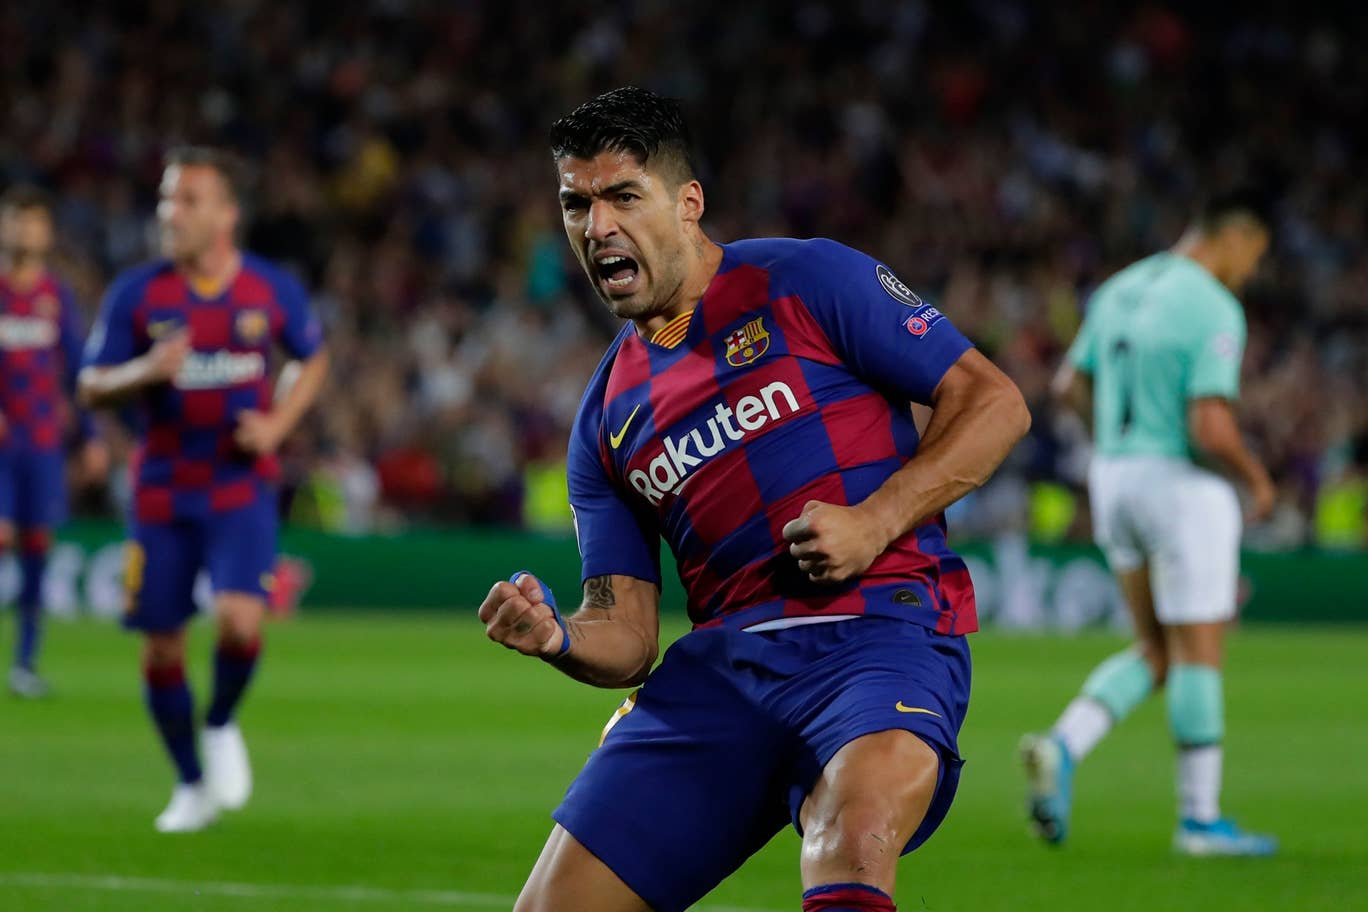 Luis Suárez celebrating a goal against Inter Milan. / GETTY IMAGES